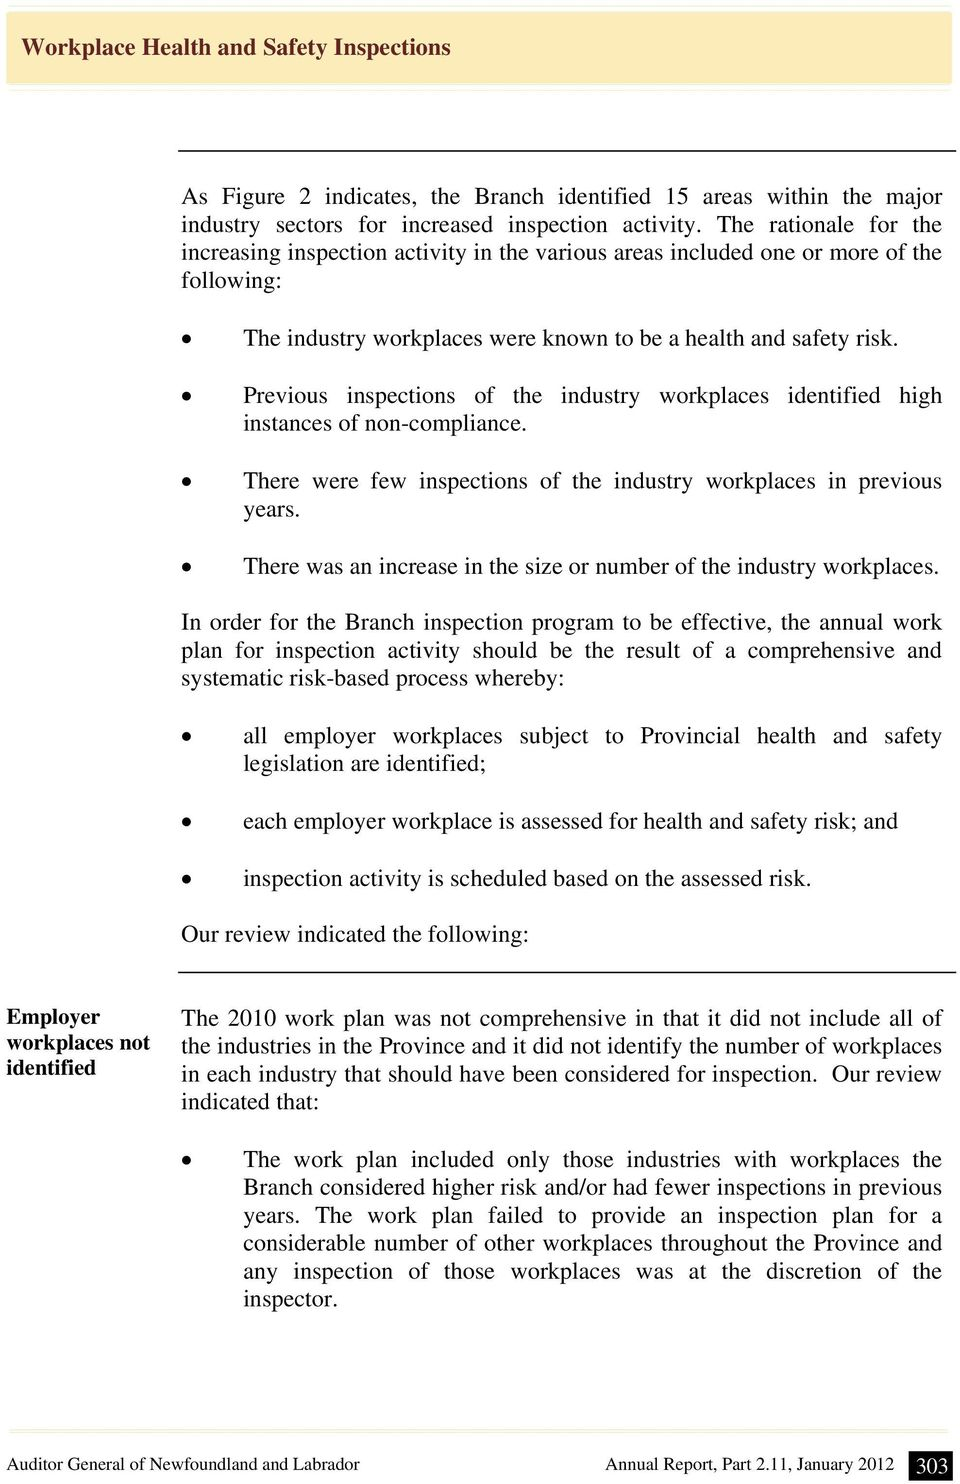 Previous inspections of the industry workplaces identified high instances of non-compliance. There were few inspections of the industry workplaces in previous years.